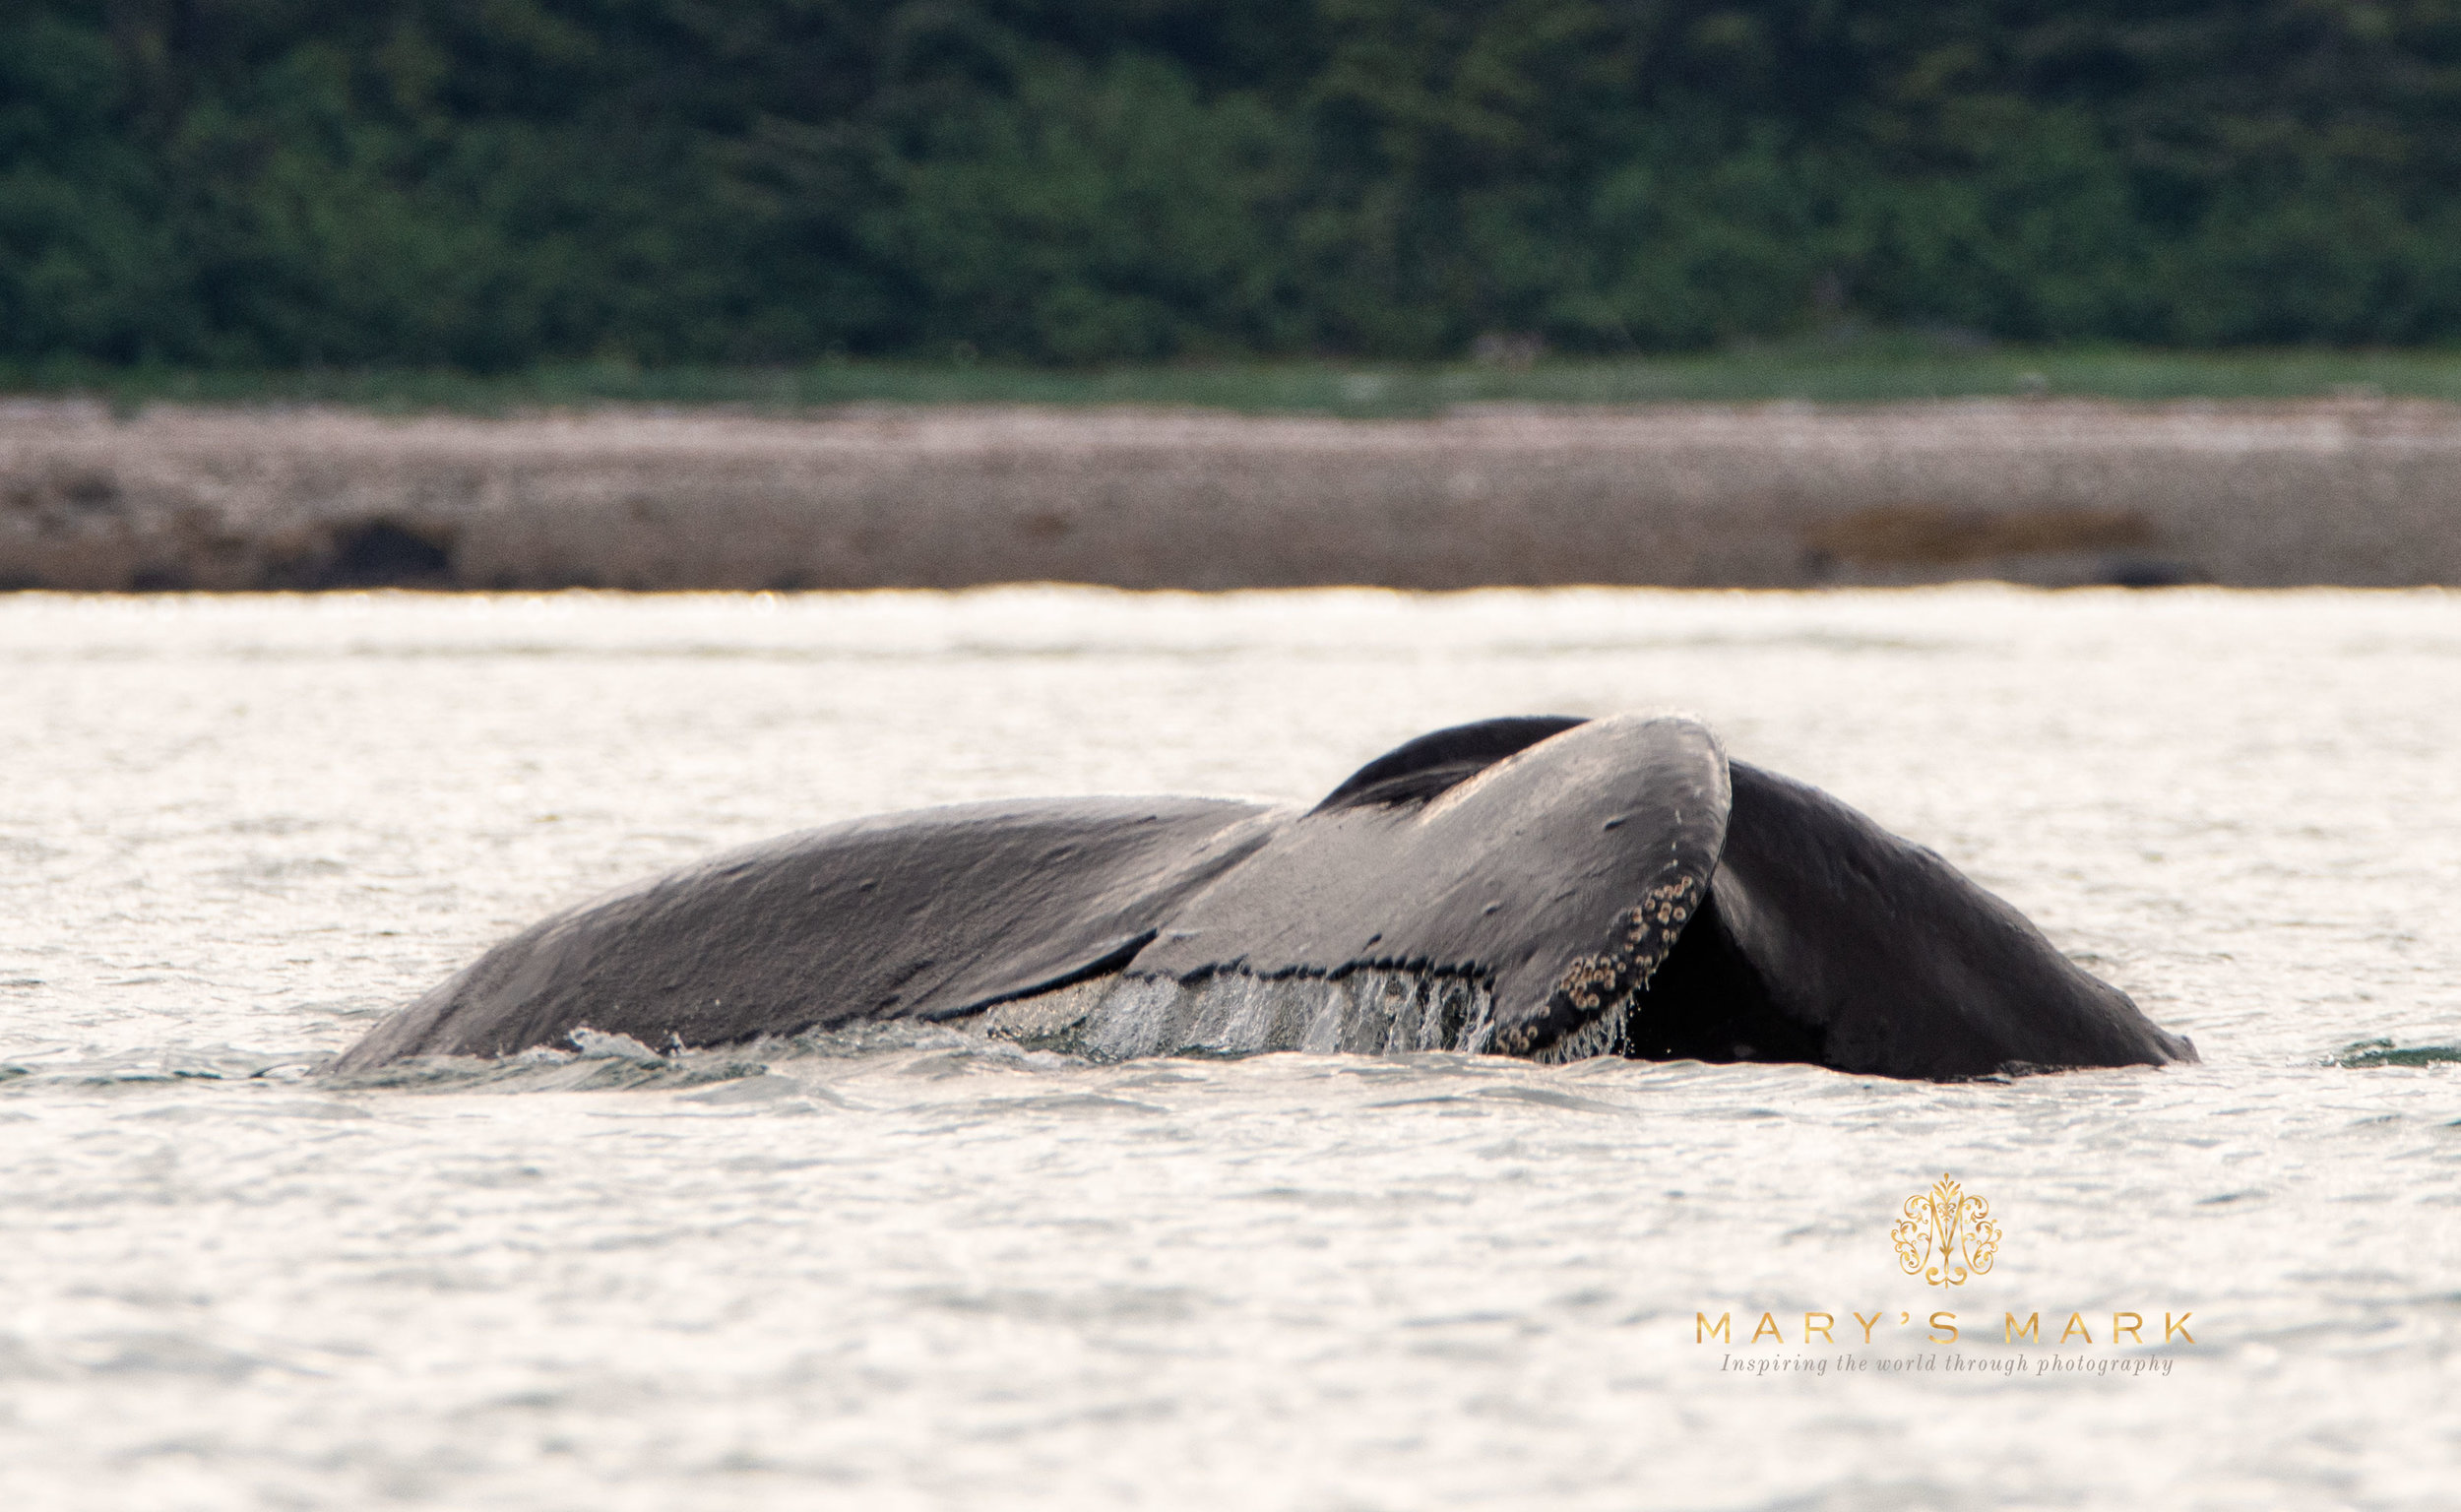 Carrying a DSLR While Traveling Can Be Incredibly Rewarding | Whale Fluke by Mary Parkhill